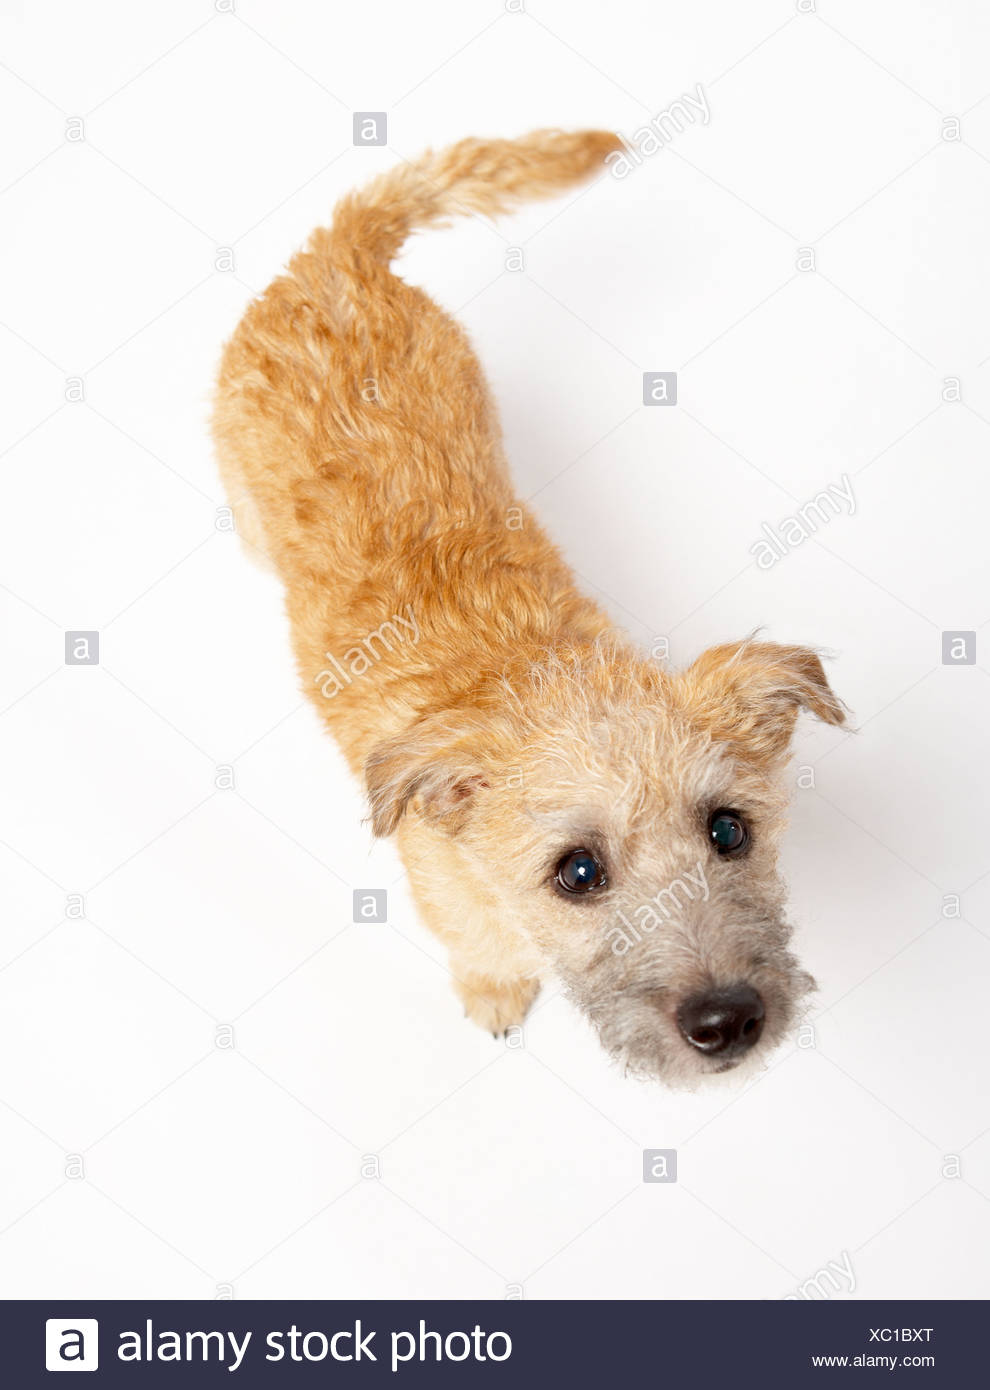 Small Dog Standing And Looking Up - Stock Image